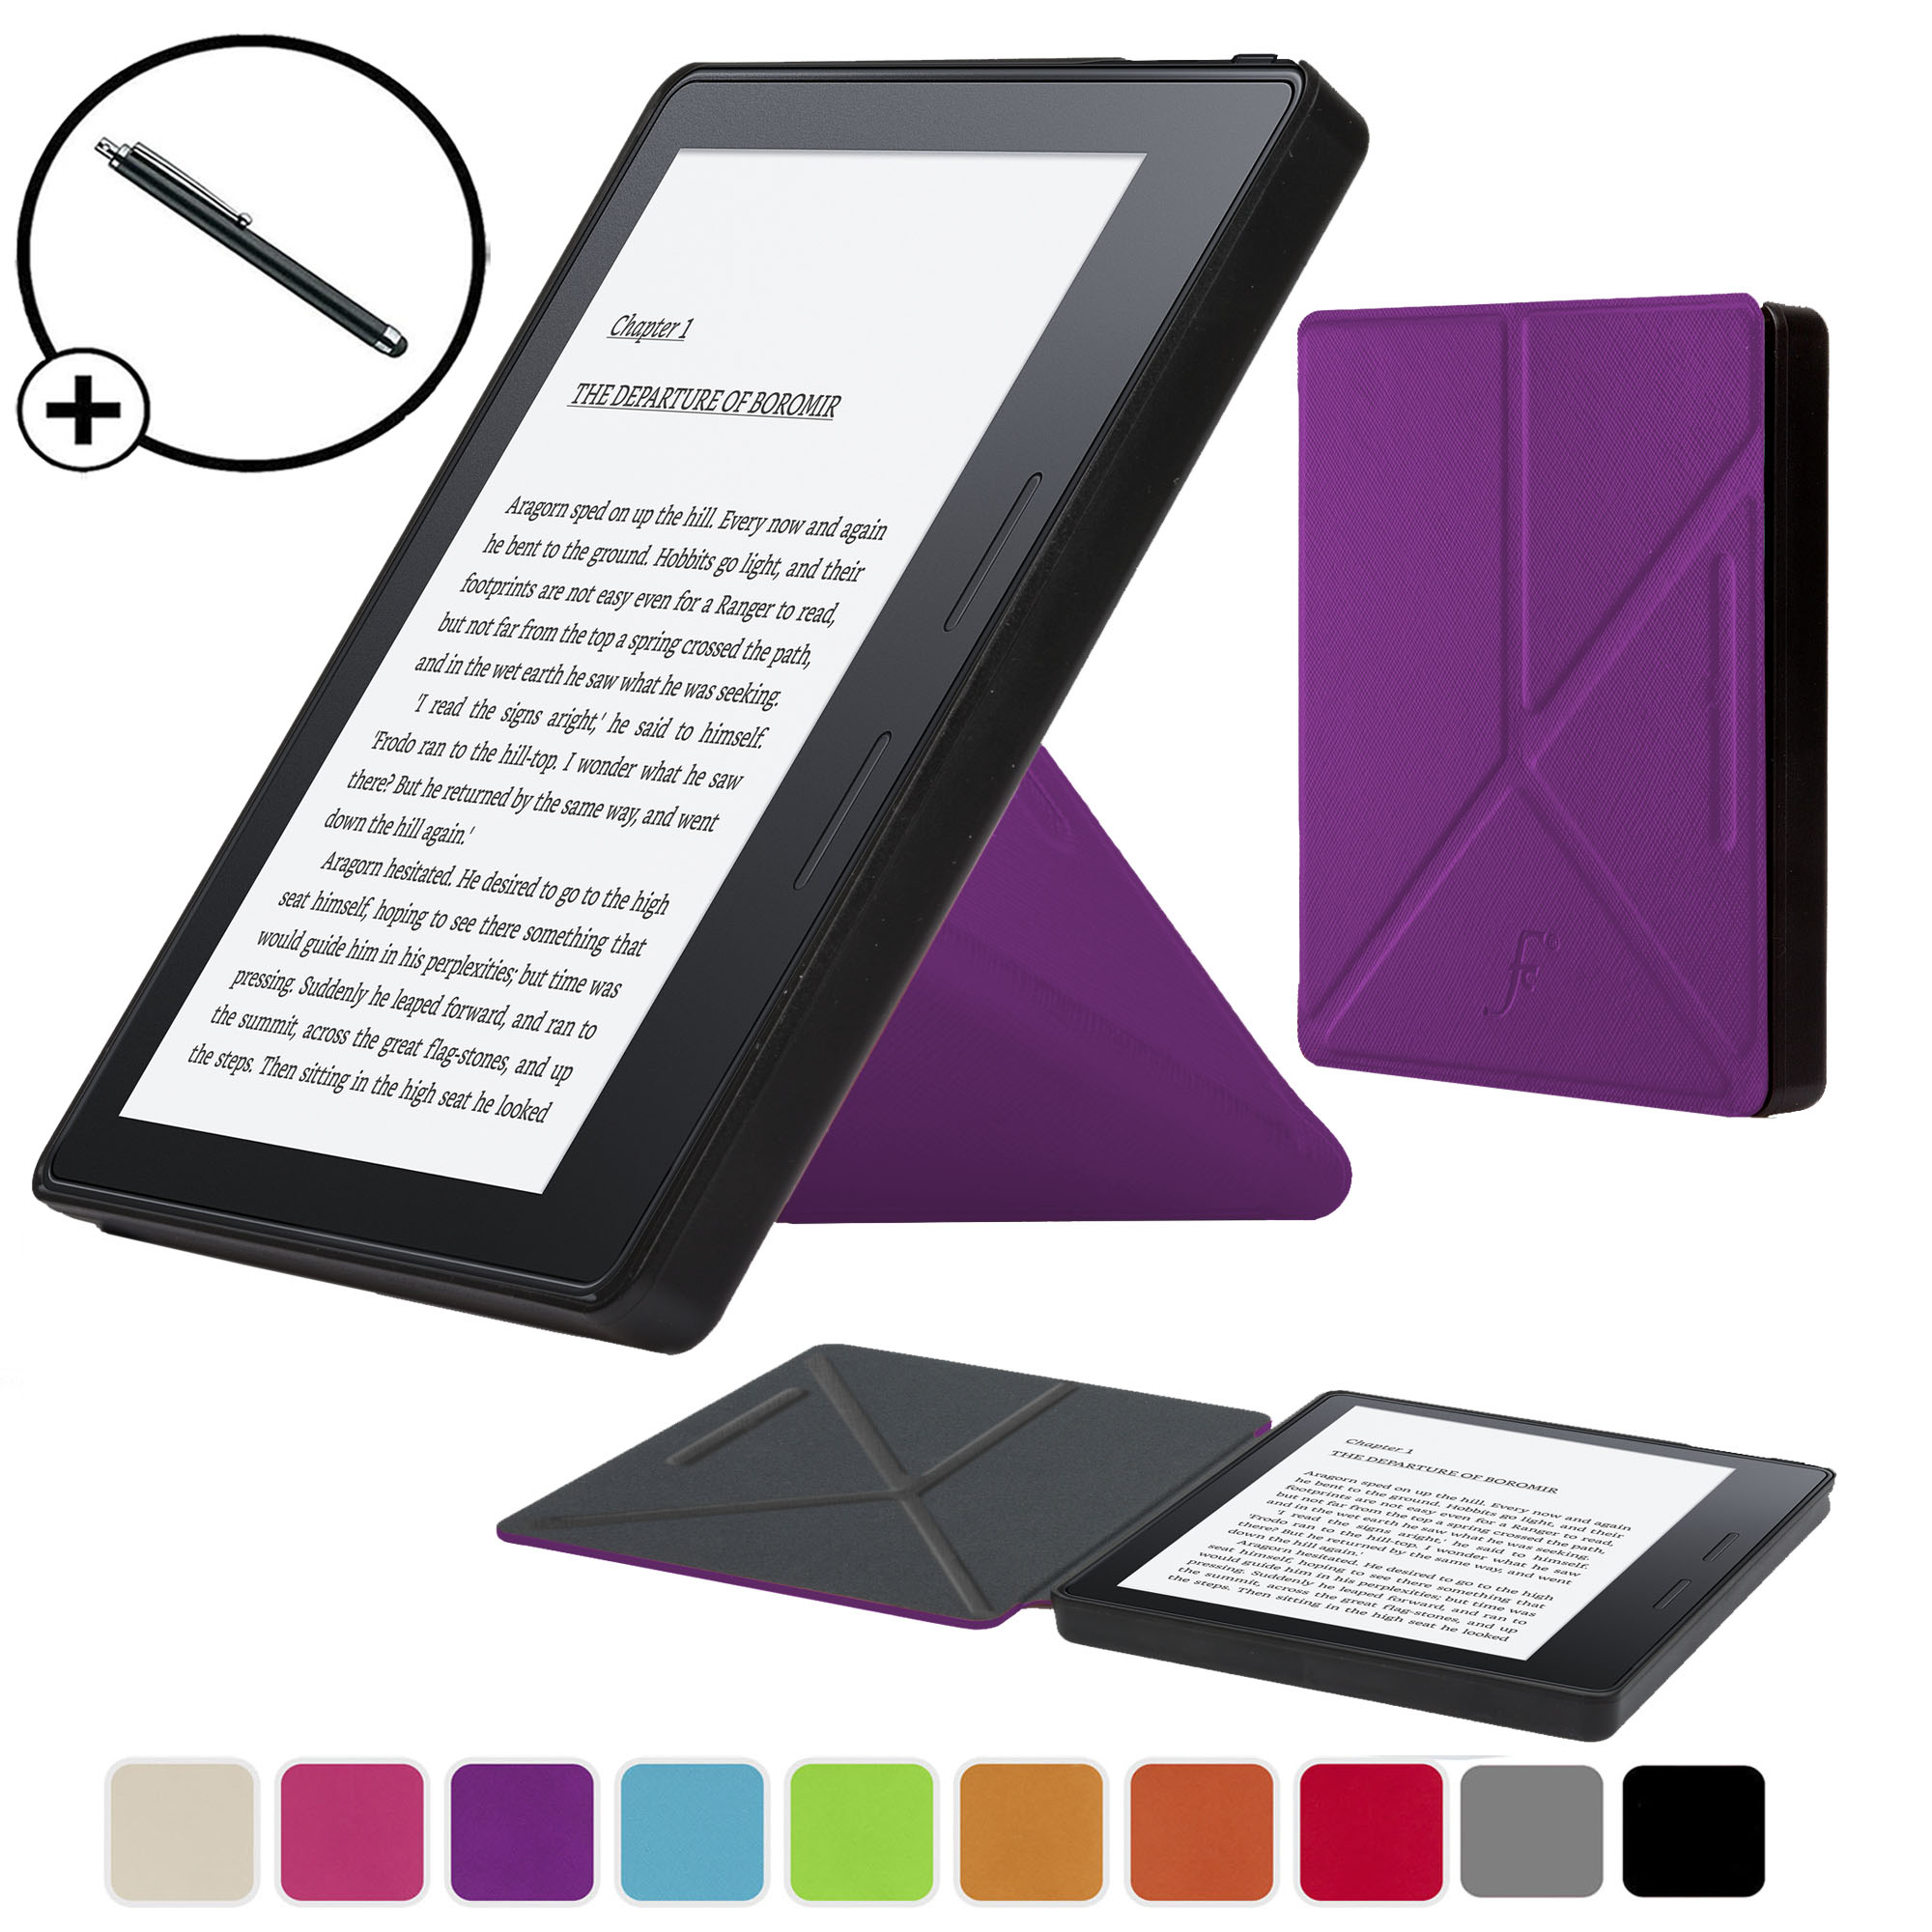 Details about Forefront Cases Purple Origami Smart Case Cover Amazon Kindle  Oasis 2016 Stylus